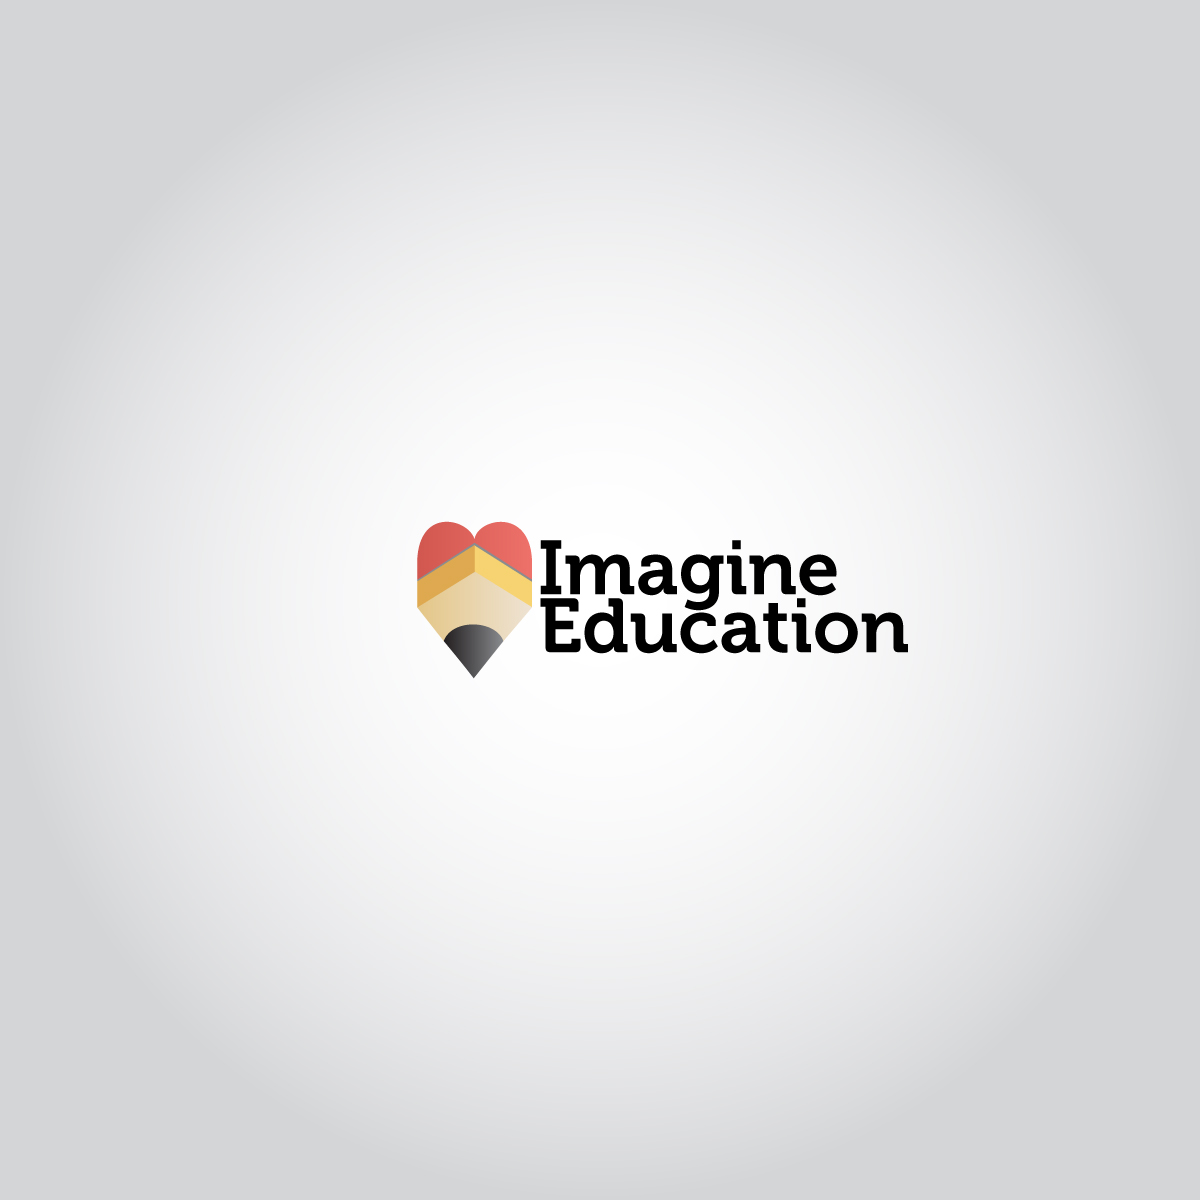 Logo Design by dottDesign - Entry No. 15 in the Logo Design Contest Imagine Education.